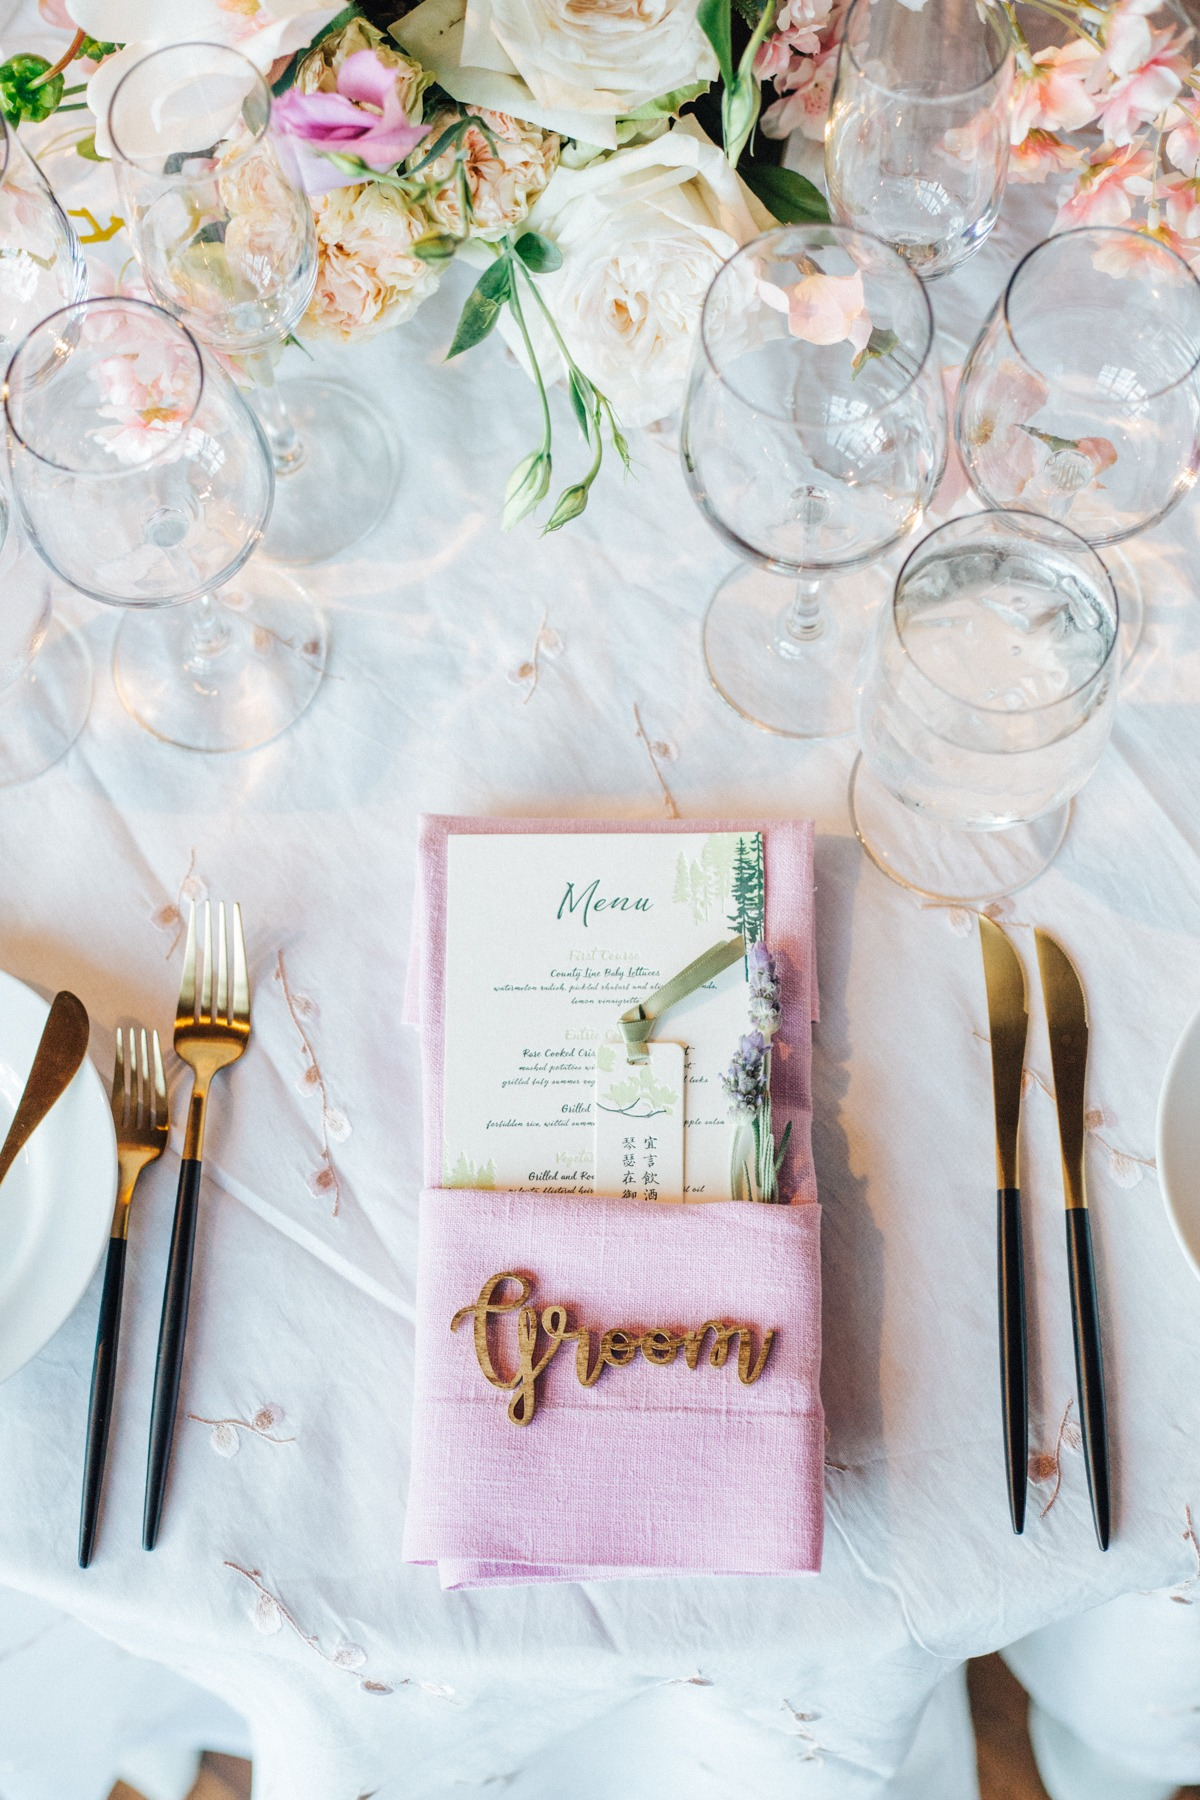 Place setting design